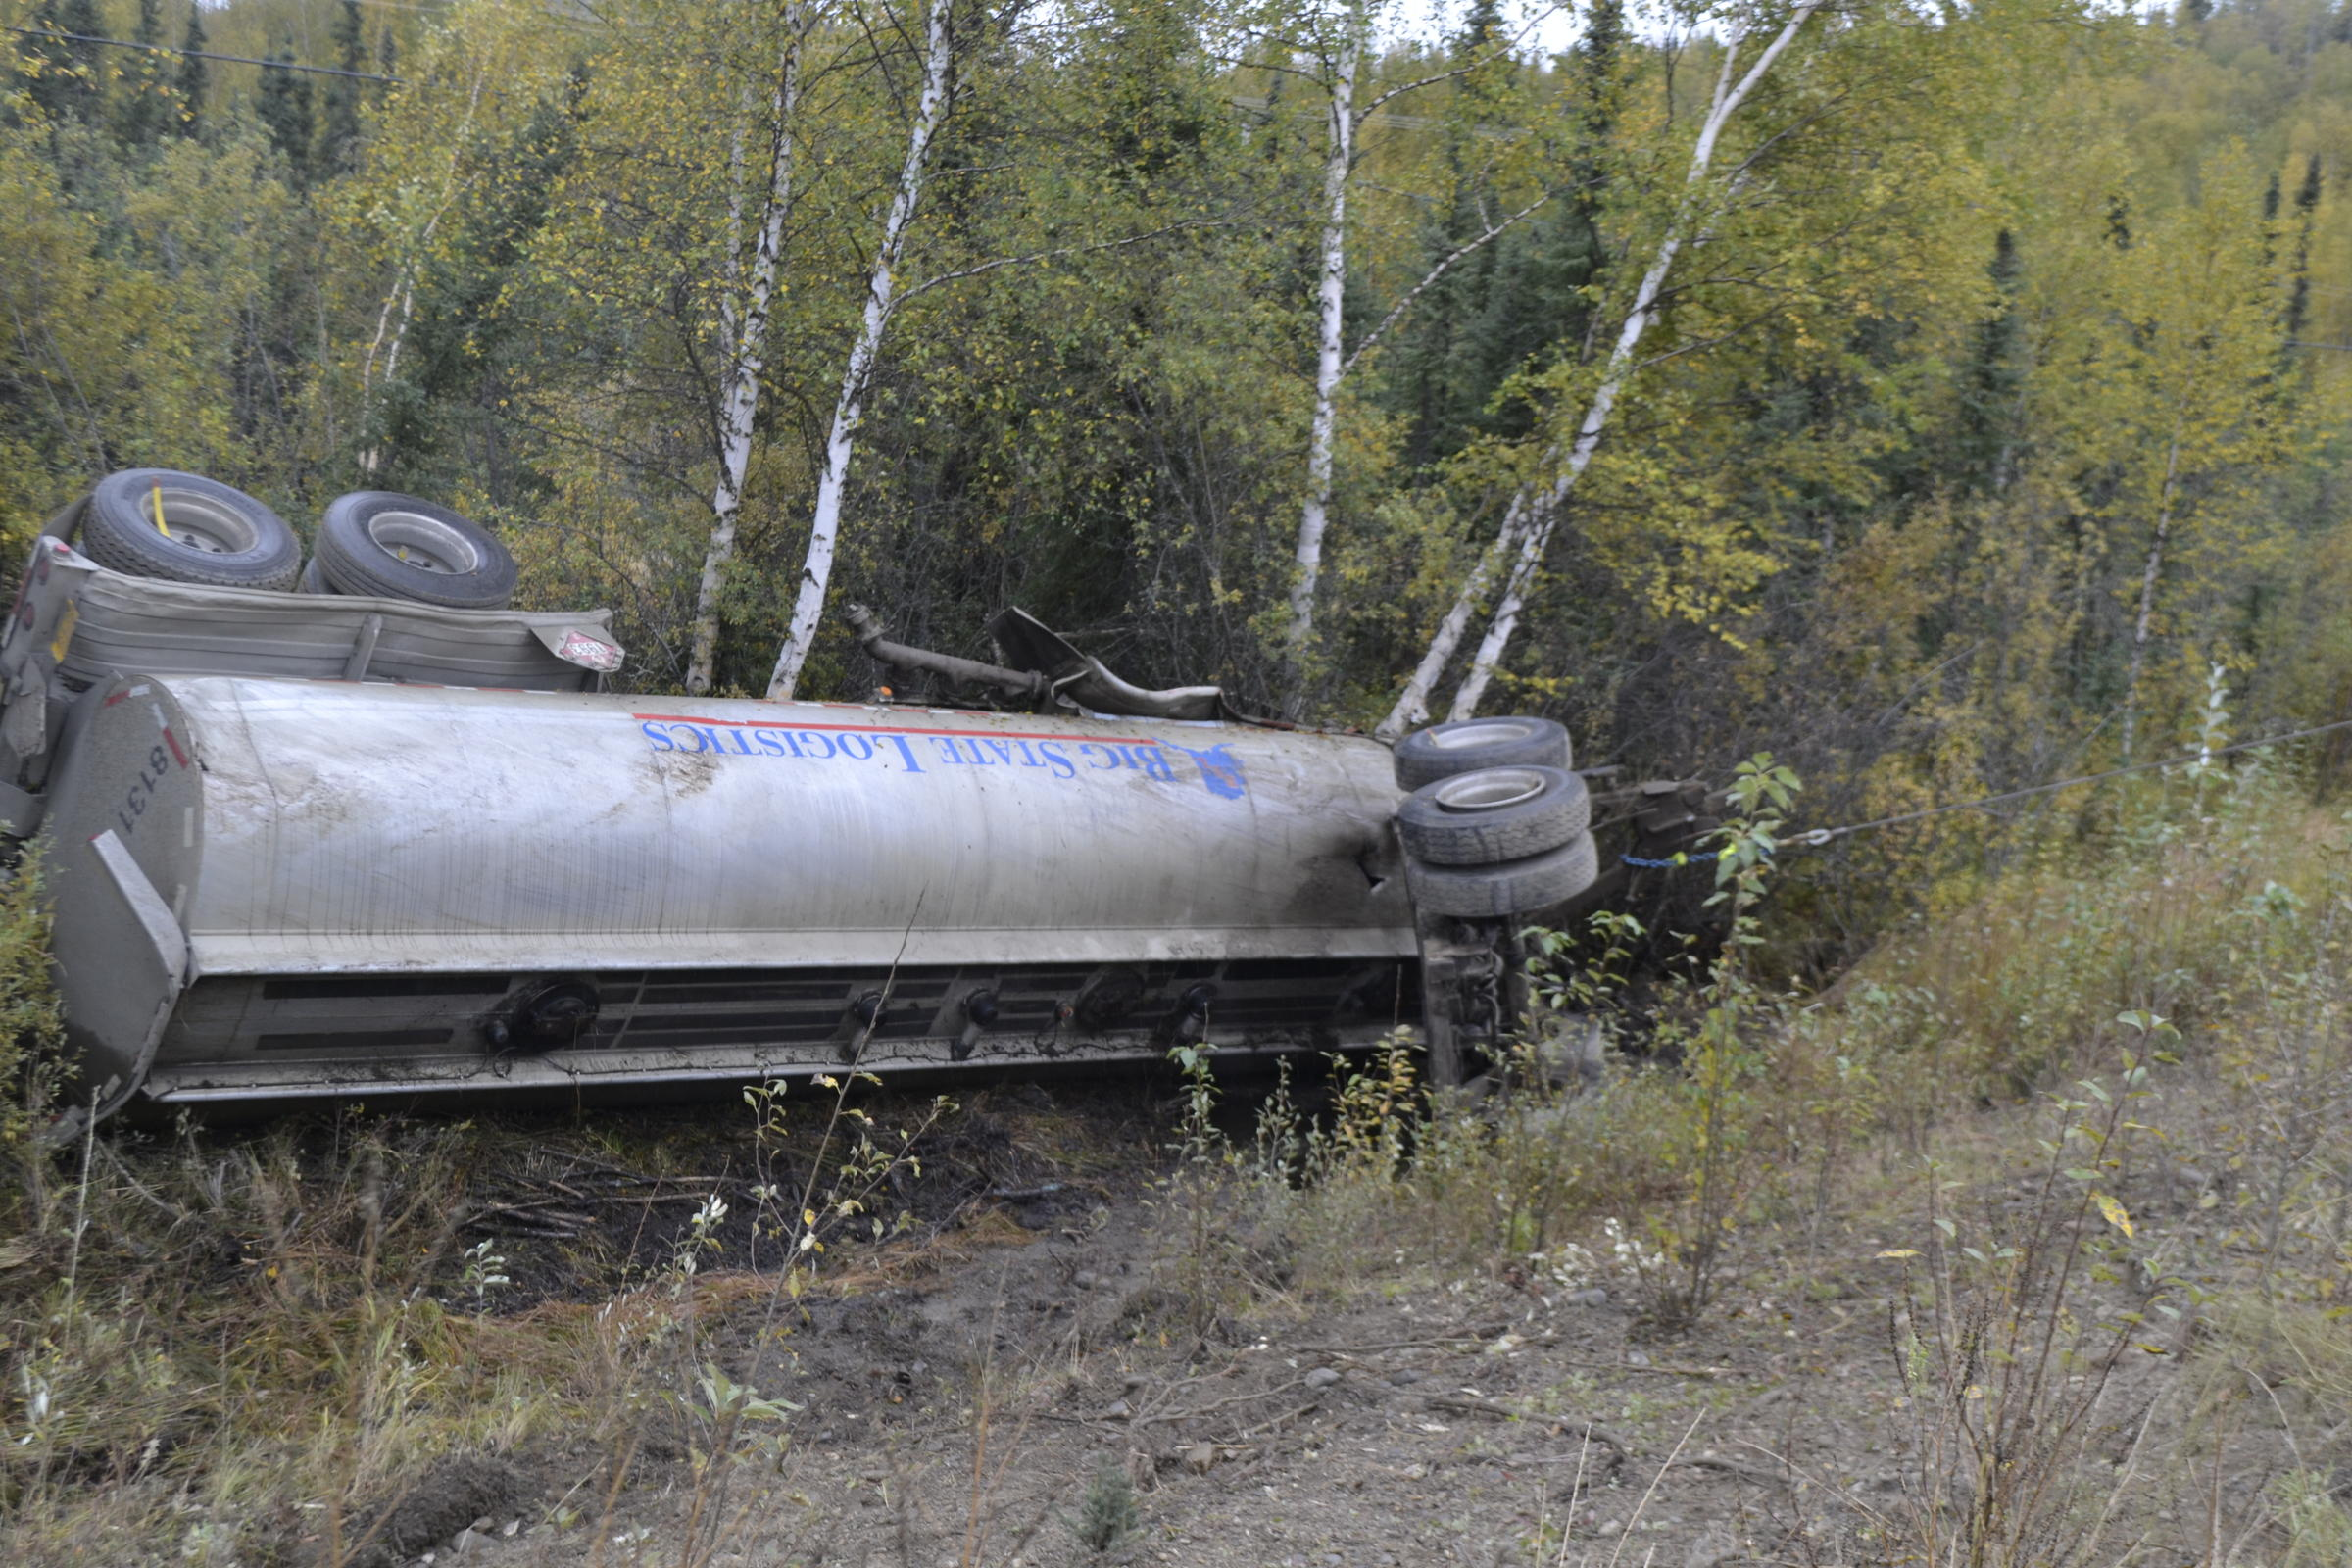 Investigators say multiple punctures enabled most of the 5,000 gallons of diesel fuel in this tanker to quickly leak out after it overturned Monday near the intersection of Lost Lake Road and the Richardson Highway. (Photo courtesy of Alaska Department of Environmental Conservation)